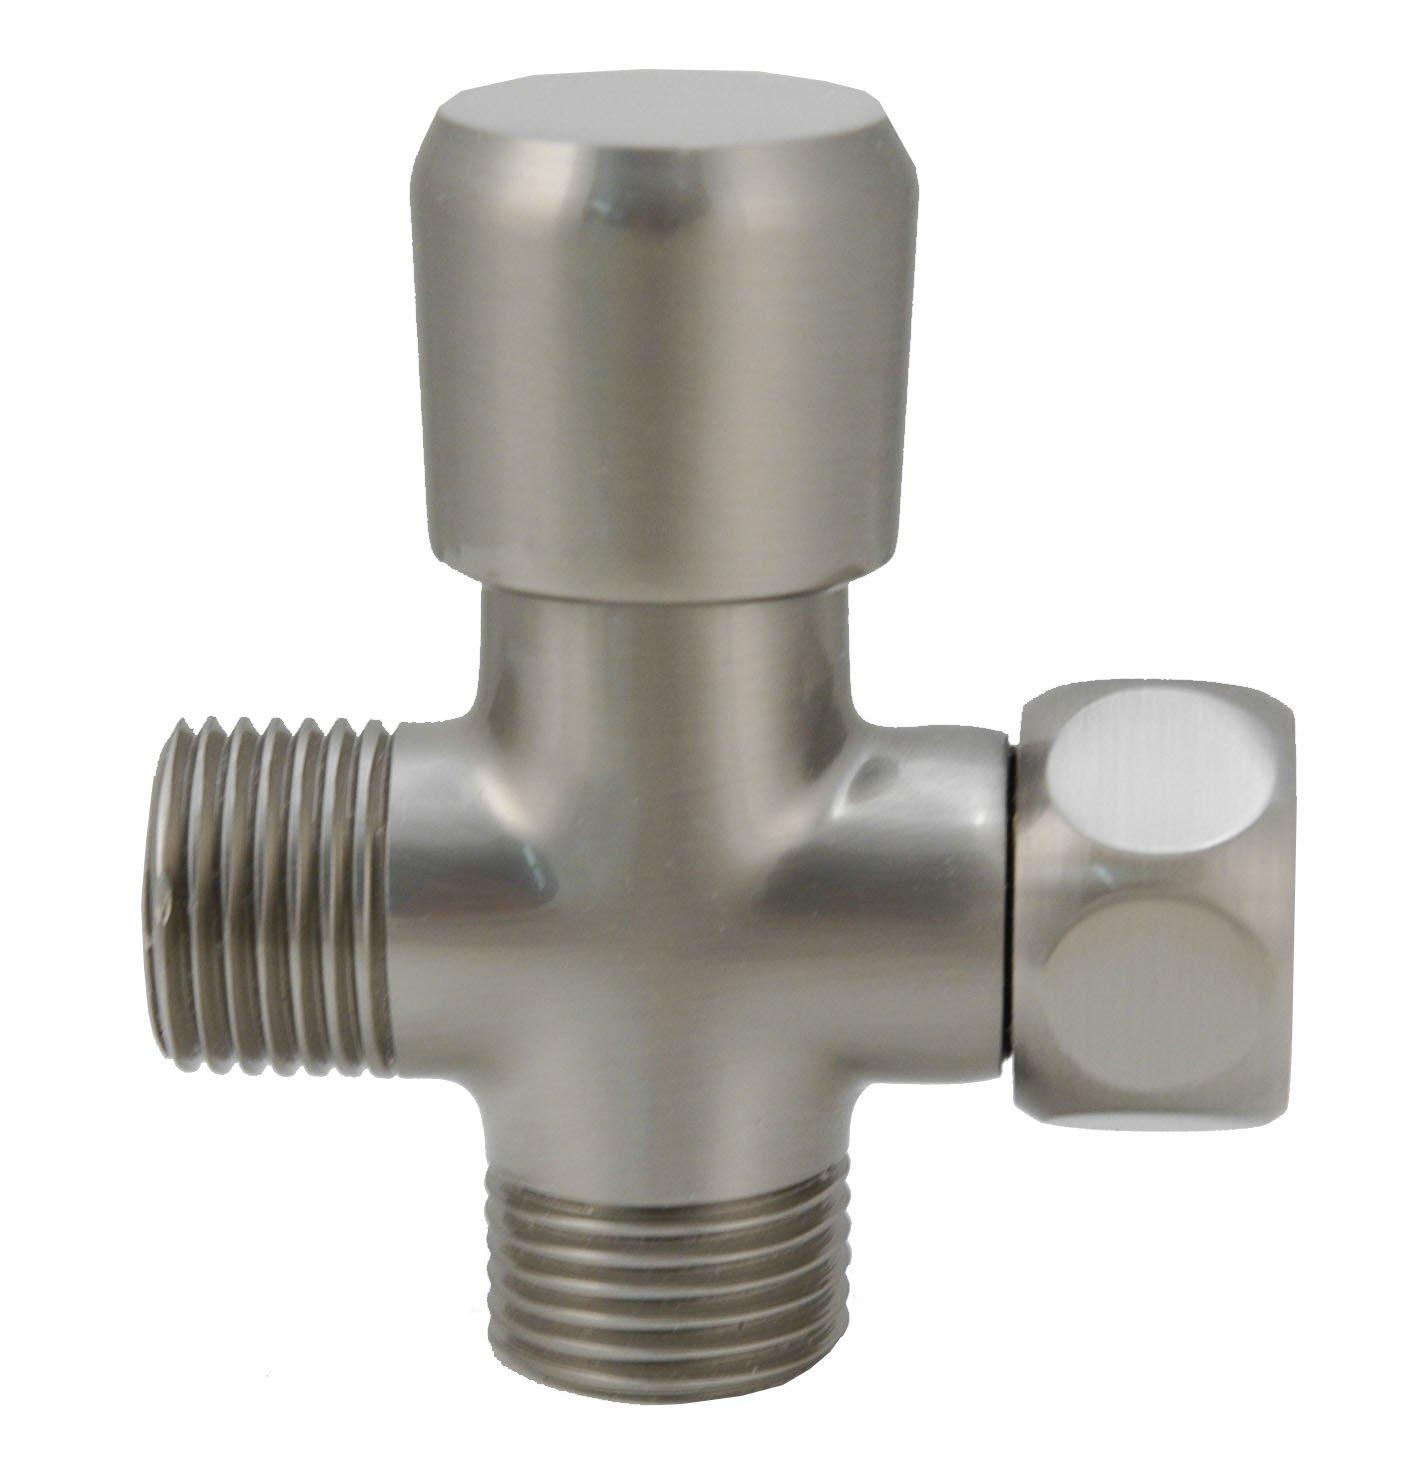 Shower Flow Diverter, Made of Solid BRASS with BRASS Handle - By Plumb USA … (Satin Nickel)